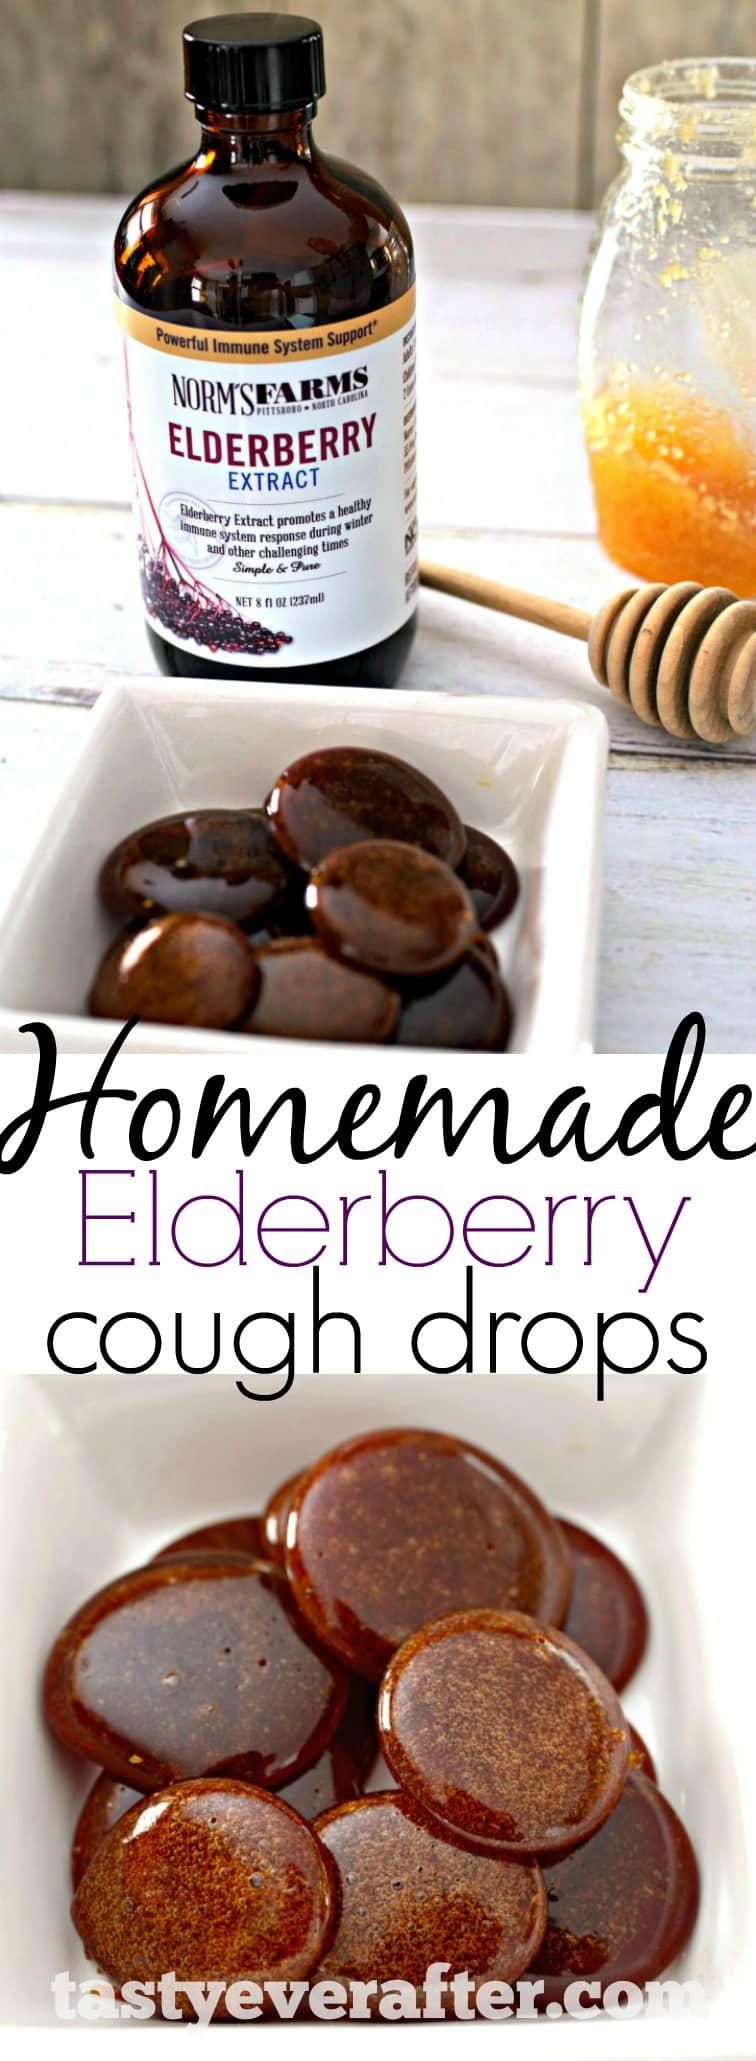 Homemade Elderberry Cough Drops